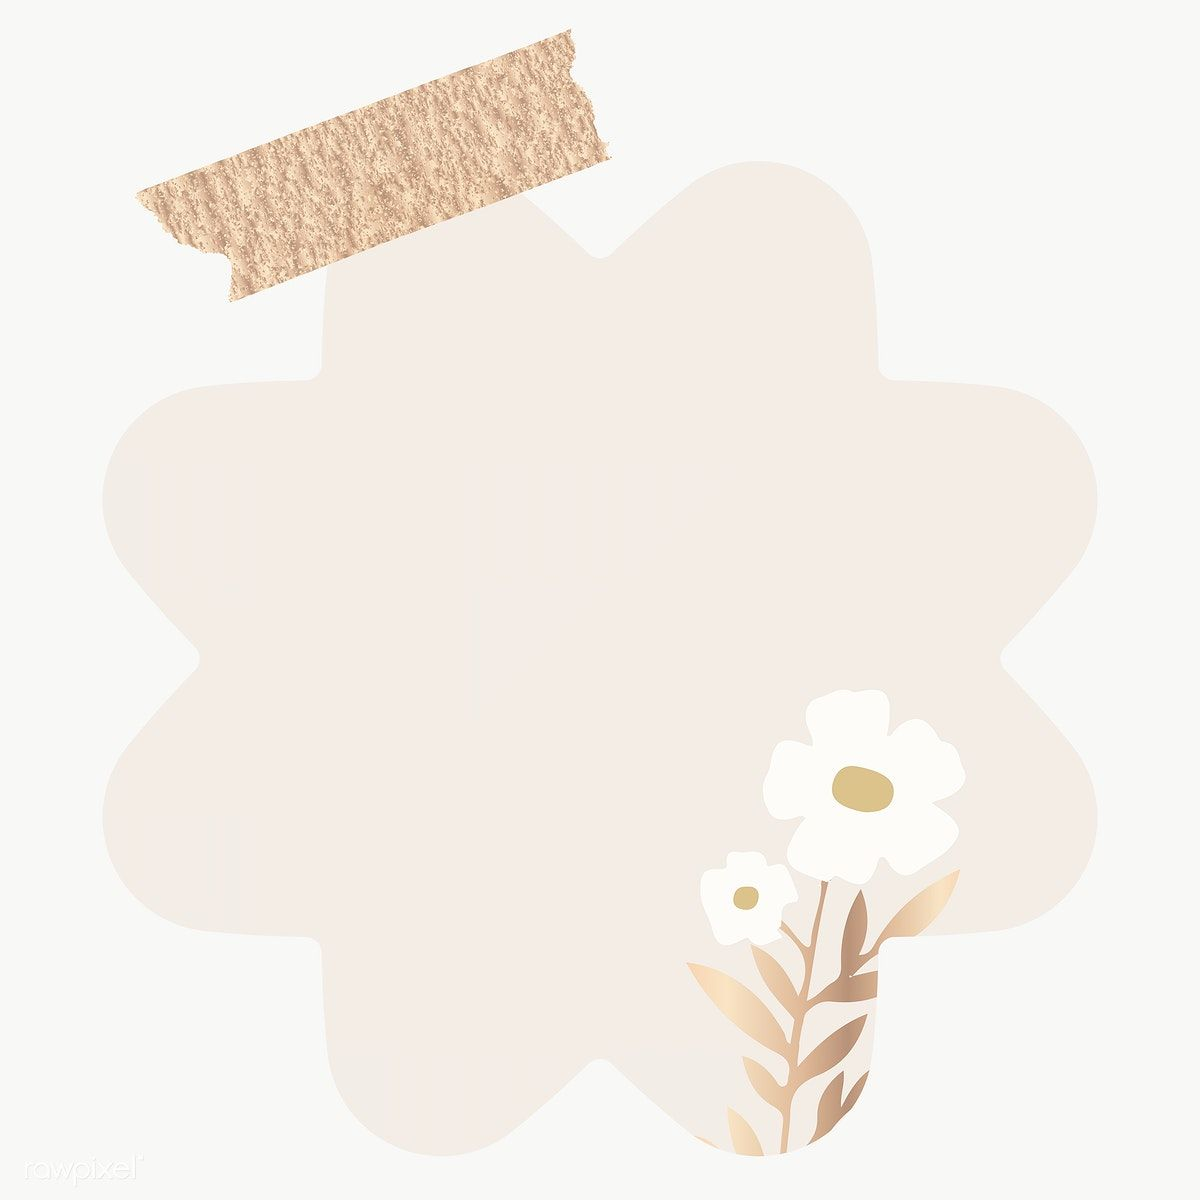 Blank Flower Shape Notepaper Set With Sticky Tape On Transparent Free Image By Rawpixel Com Chayanit Paper Background Texture Note Paper Paper Background